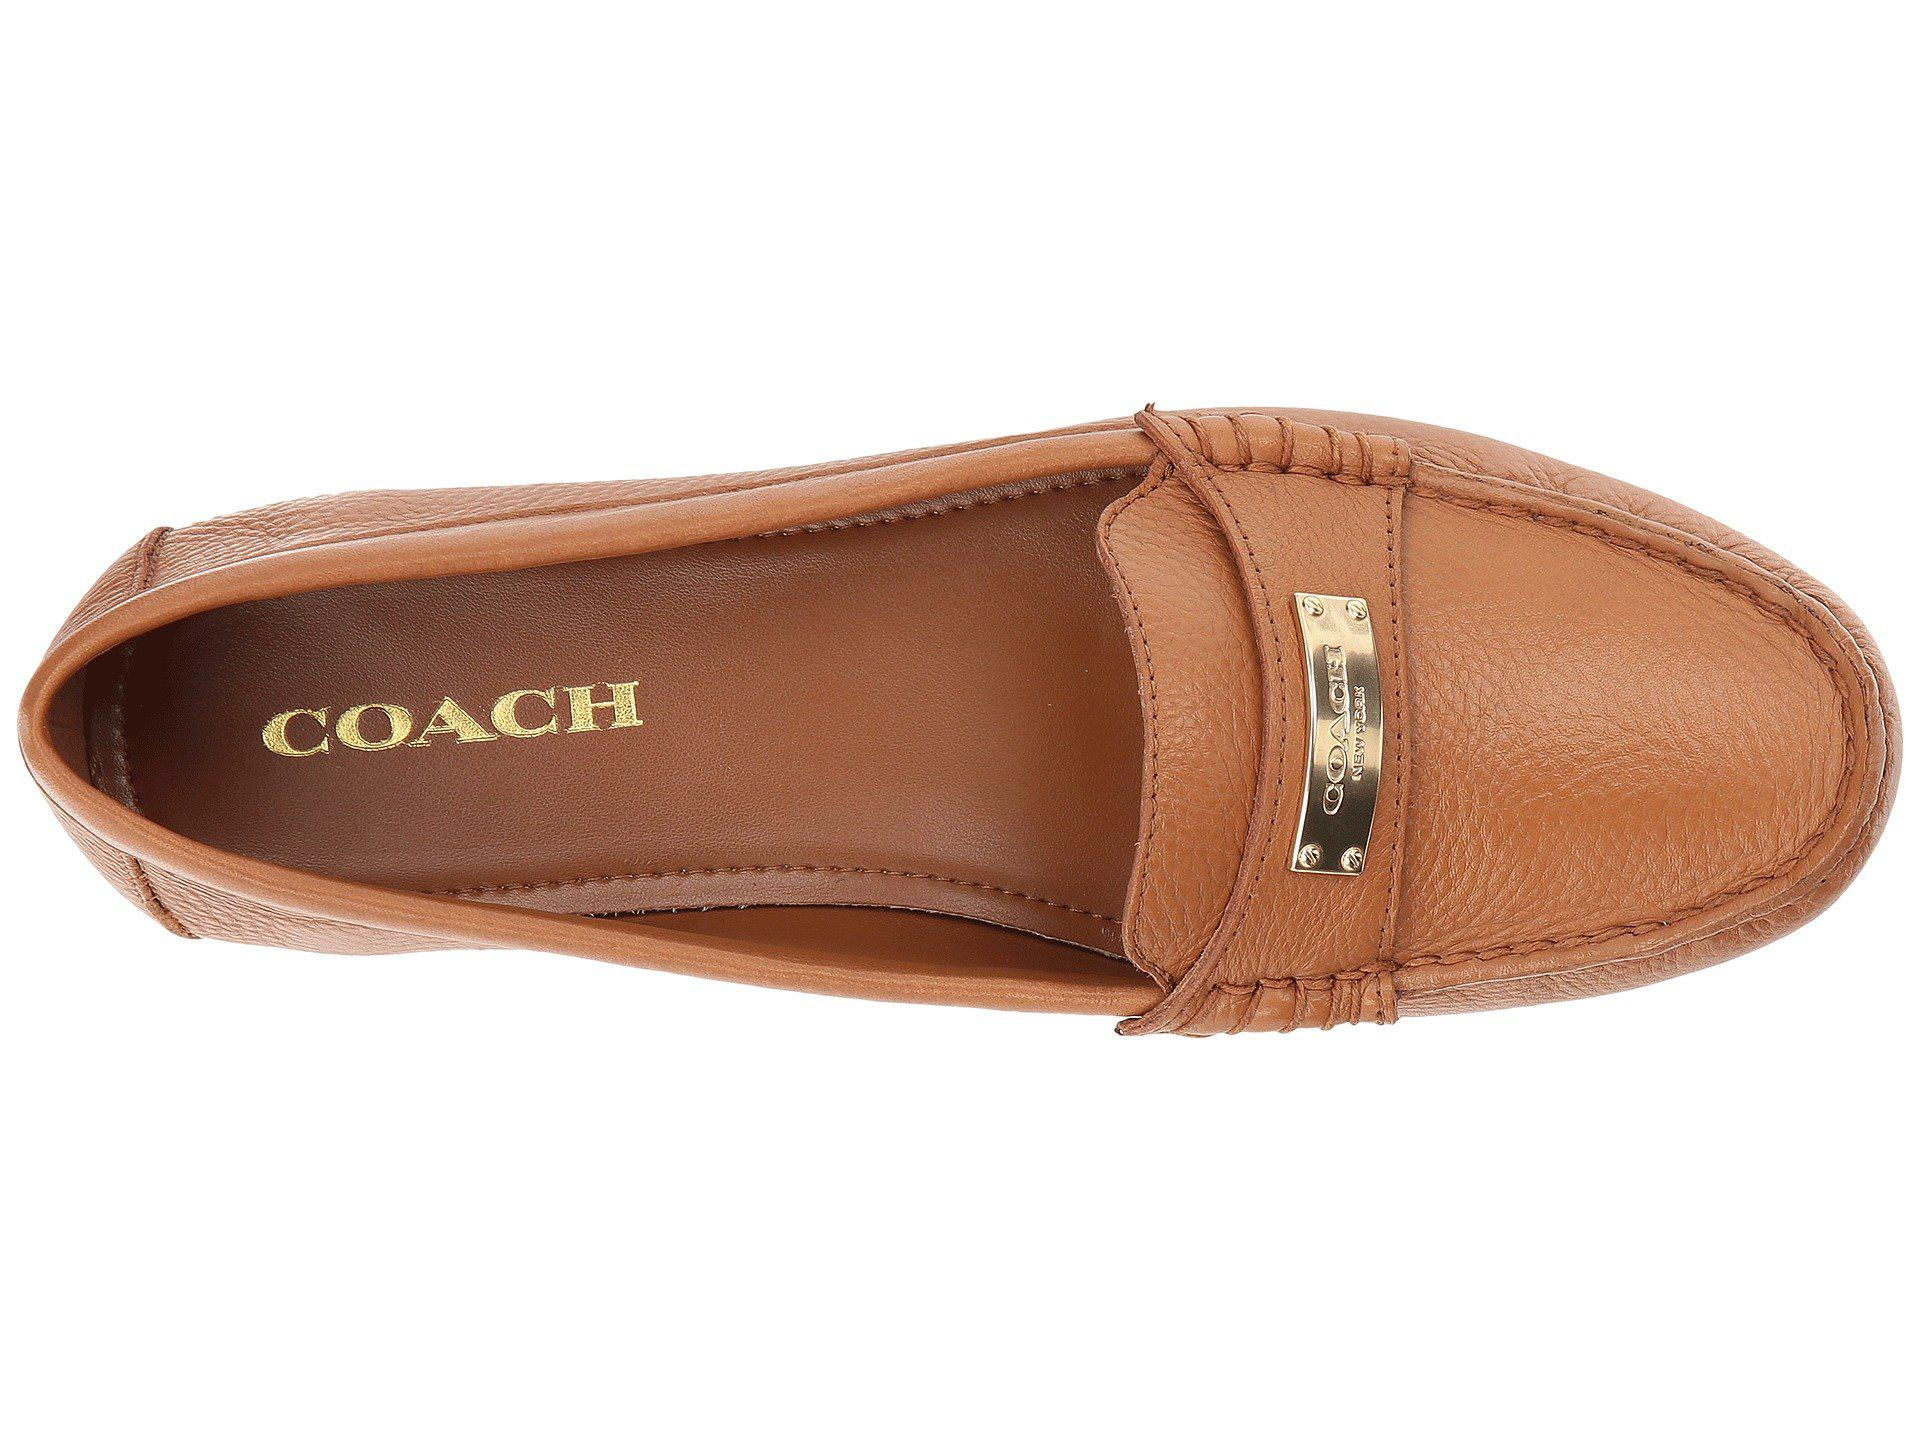 1ba015f8694 Lyst coach fredrica loafer in brown jpg 1920x1440 Fredrica loafer coach  flats